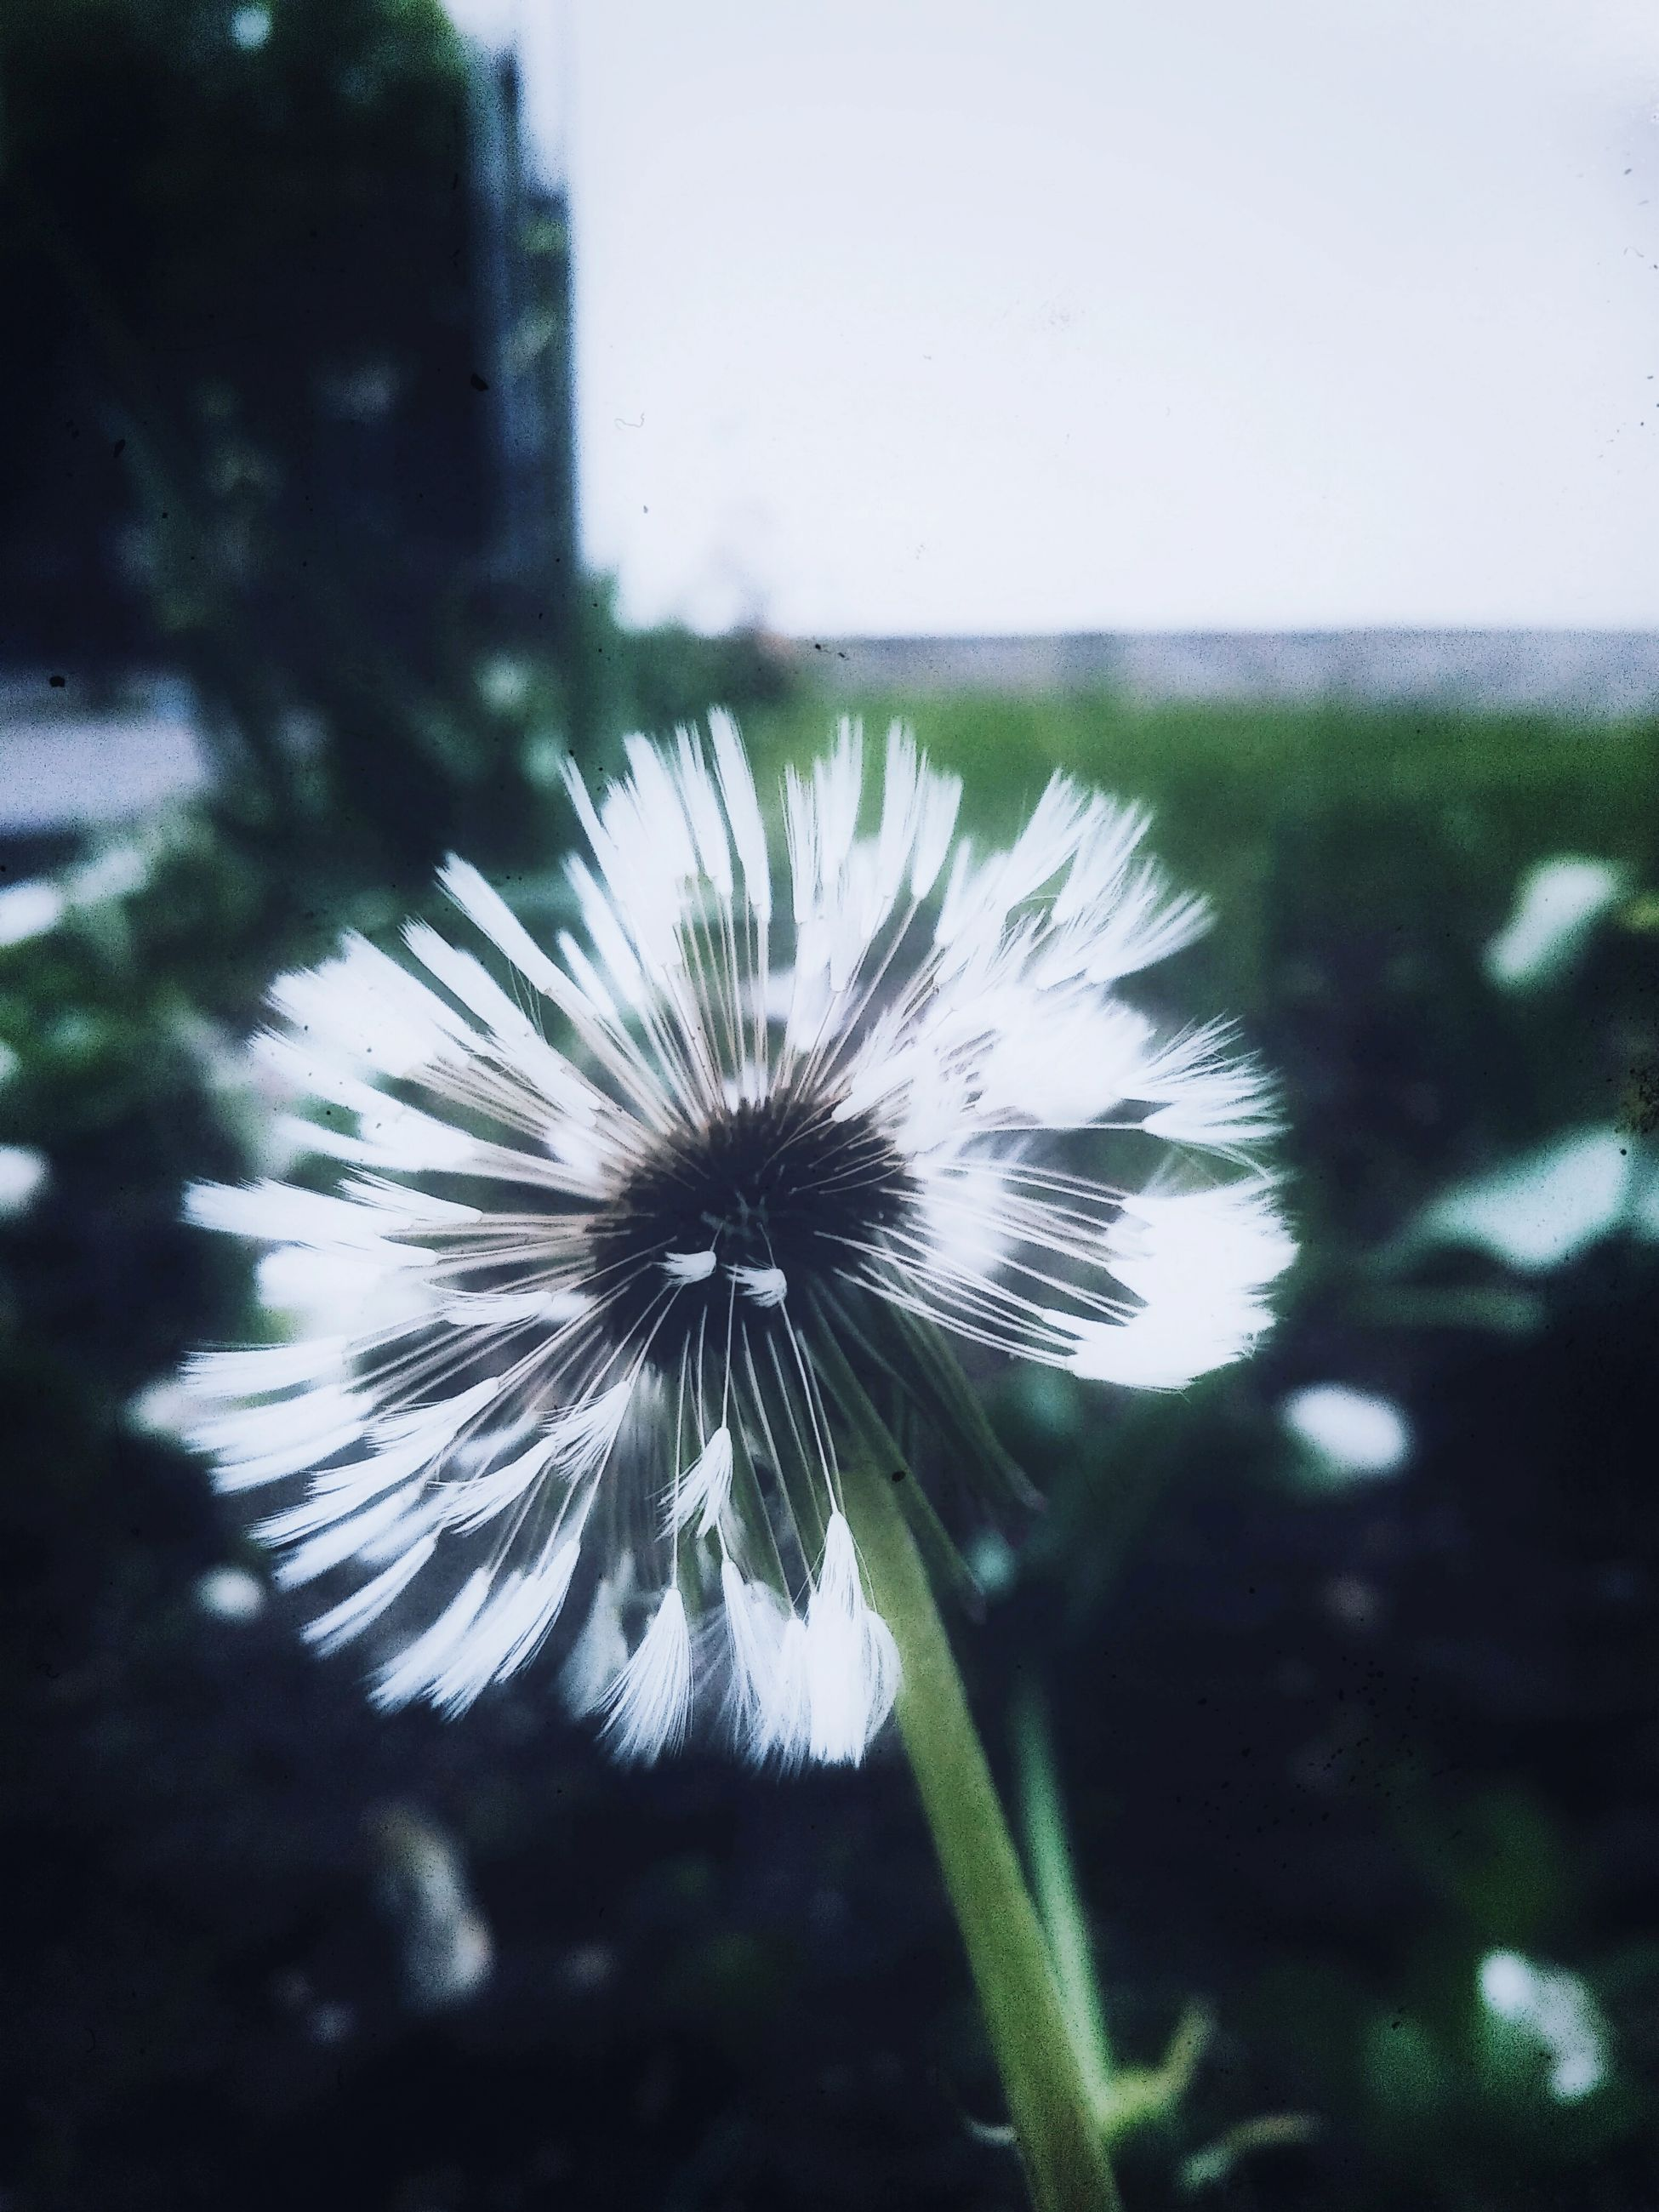 flower, fragility, nature, freshness, flower head, day, outdoors, beauty in nature, growth, close-up, no people, plant